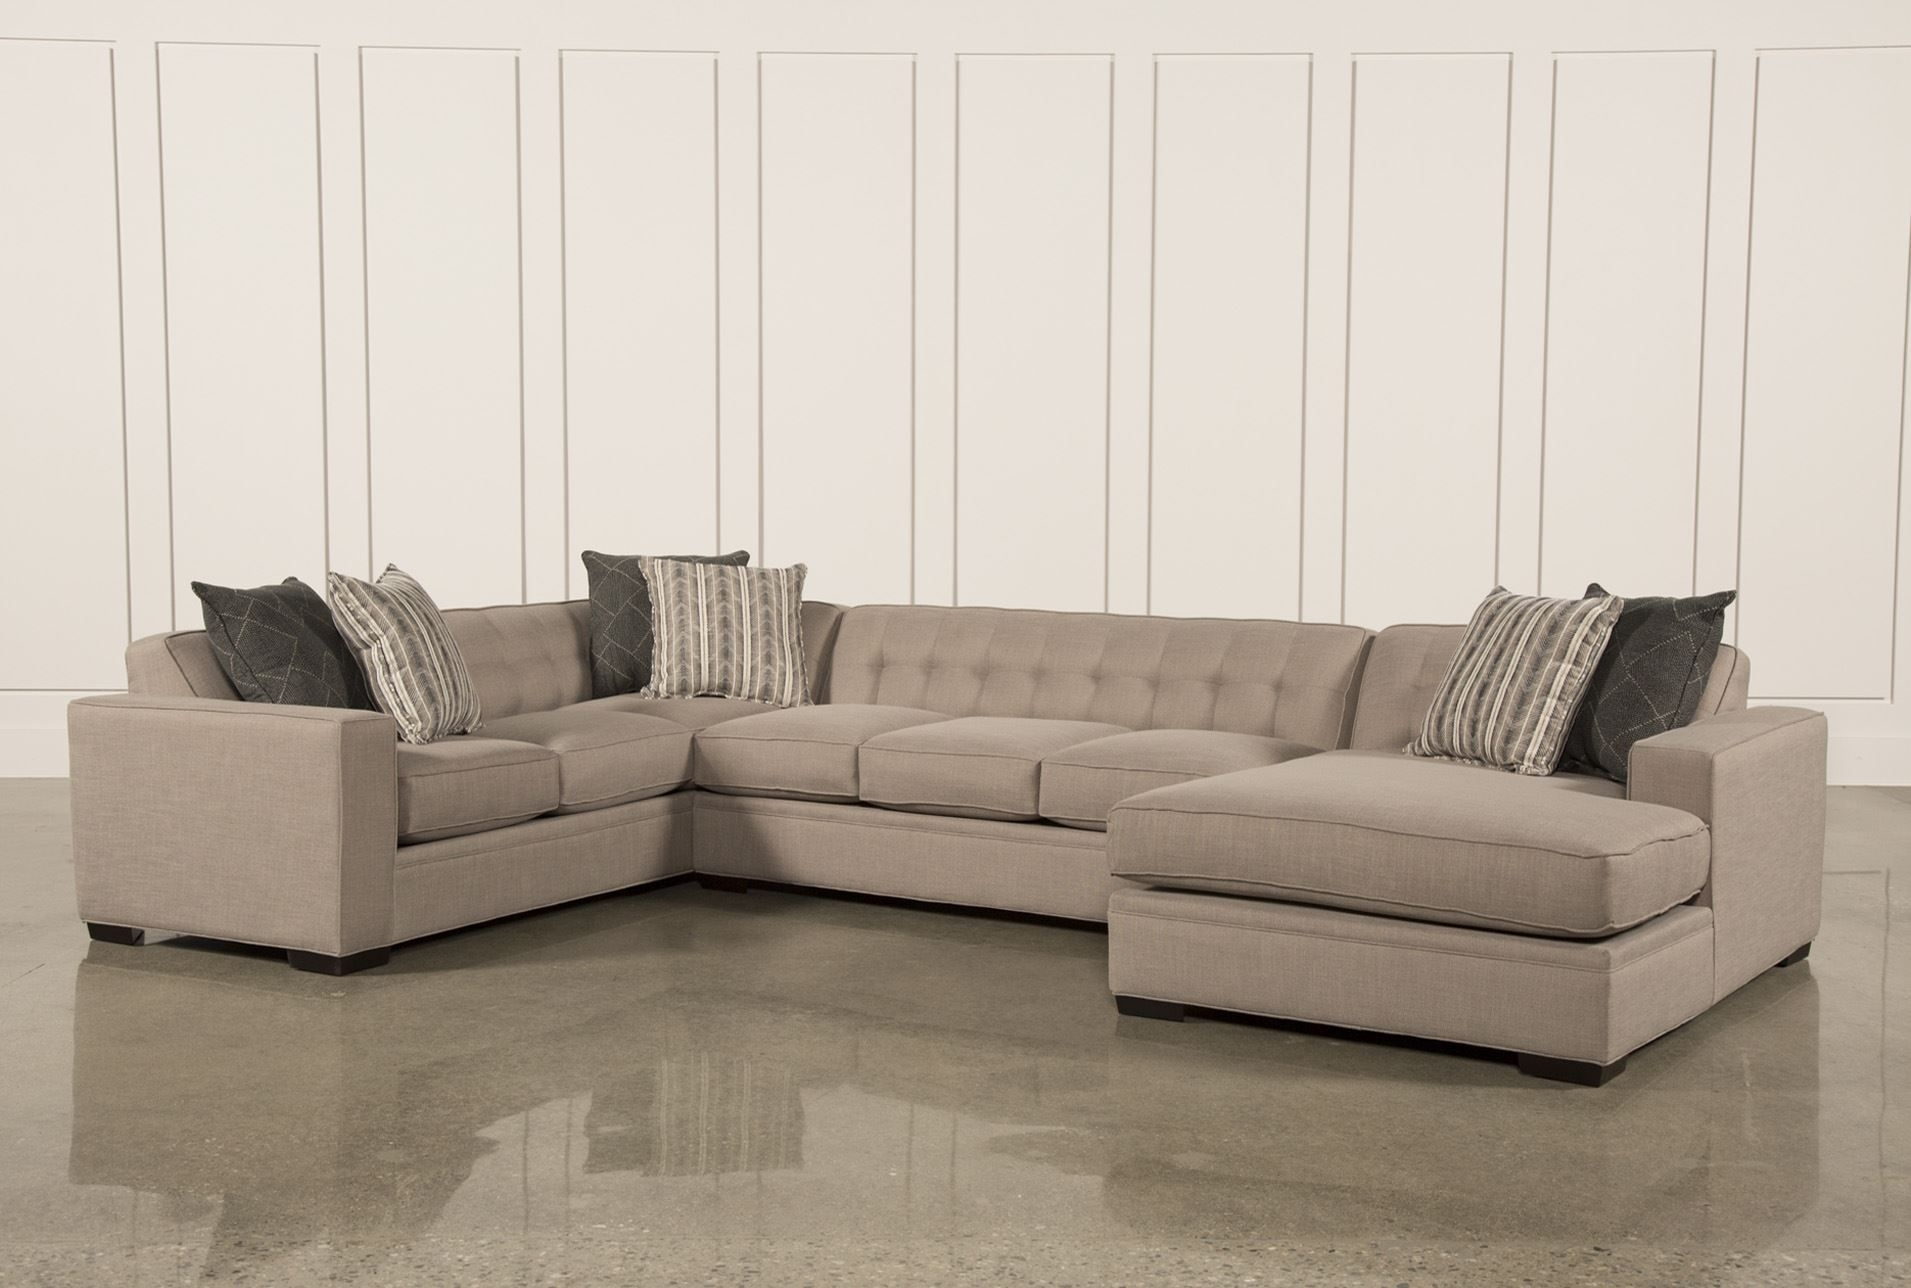 Corbin 3 Piece Sectional W/raf Chaise | New House: Loft | Pinterest Intended For Norfolk Grey 6 Piece Sectionals With Raf Chaise (Image 6 of 25)